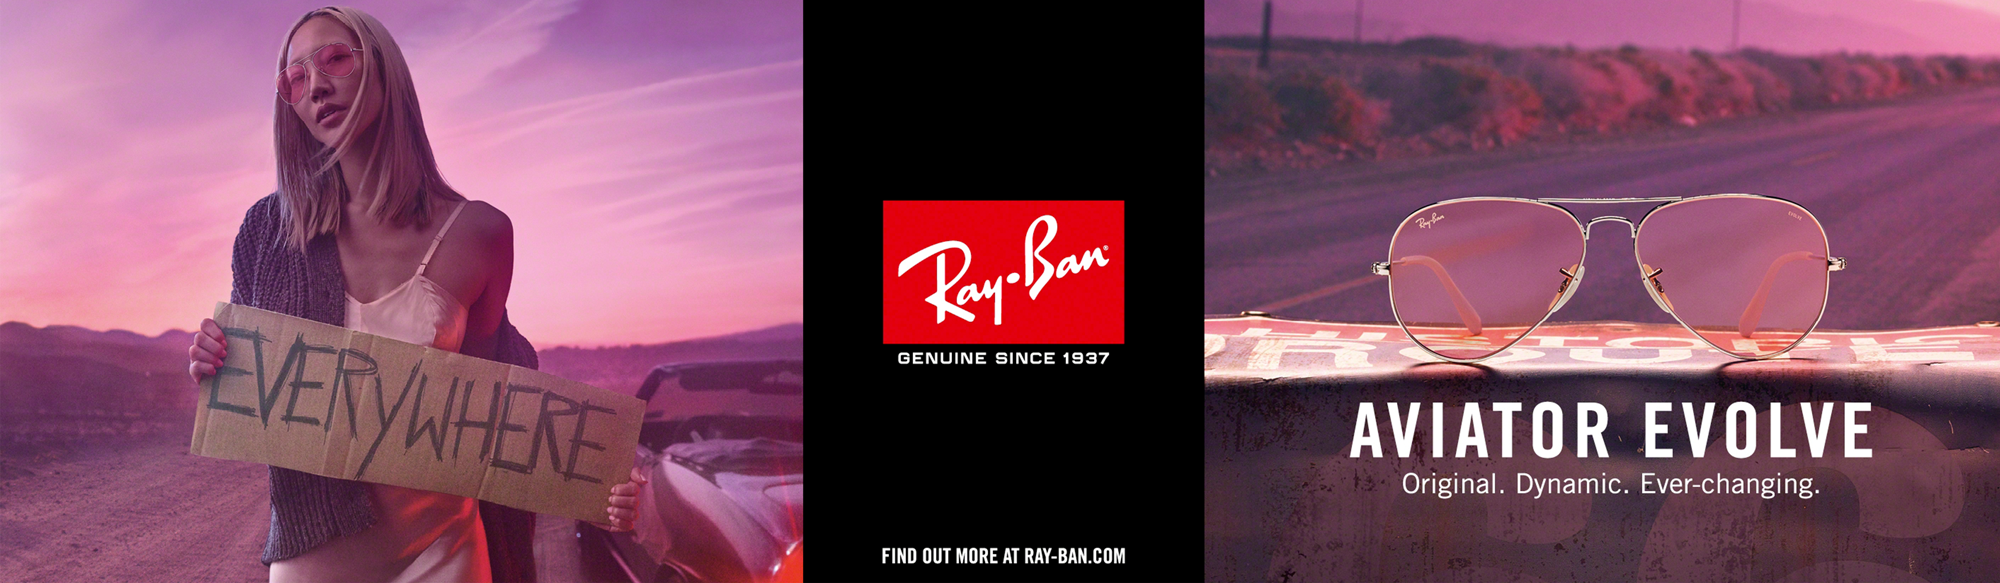 8f1b9d66e967e2 For almost 80 years Ray-Ban has been forging its name as the most iconic  brand in eyewear. From their application in the military, protecting pilots  eyes ...